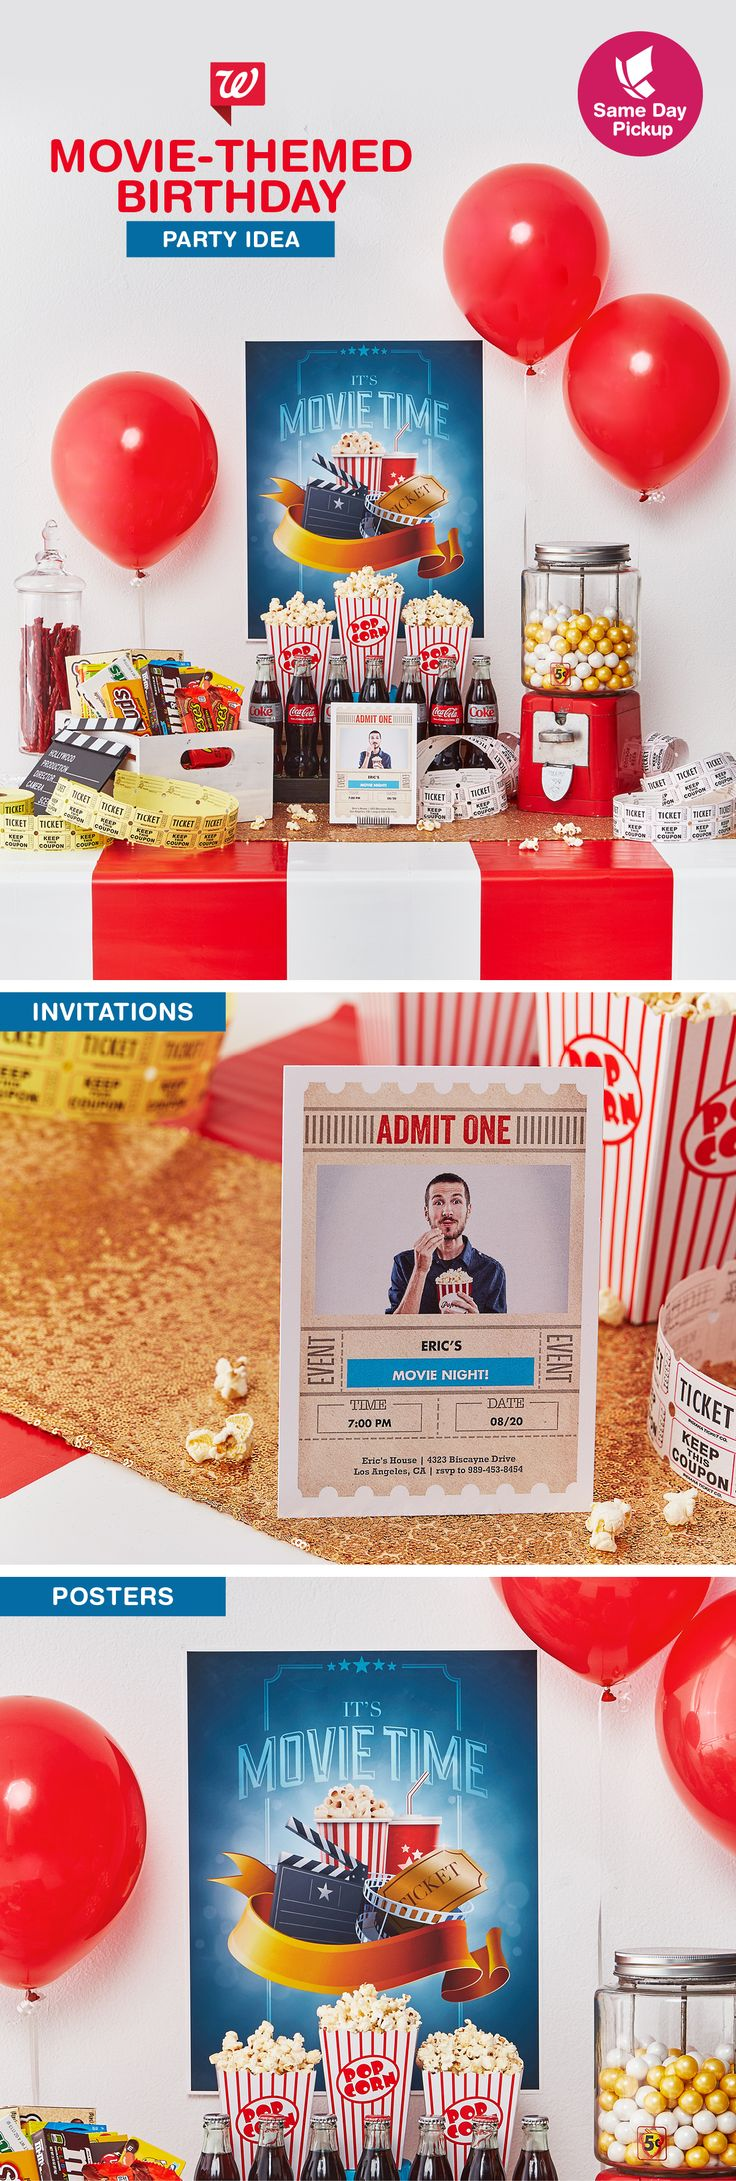 It's so easy to throw together a movie-themed party with just one quick trip. Create invites and a poster straight from your phone, and pick up movie theater snacks. Make your guests the stars of the show with a DIY photo booth! Learn more on our Smile Blog.